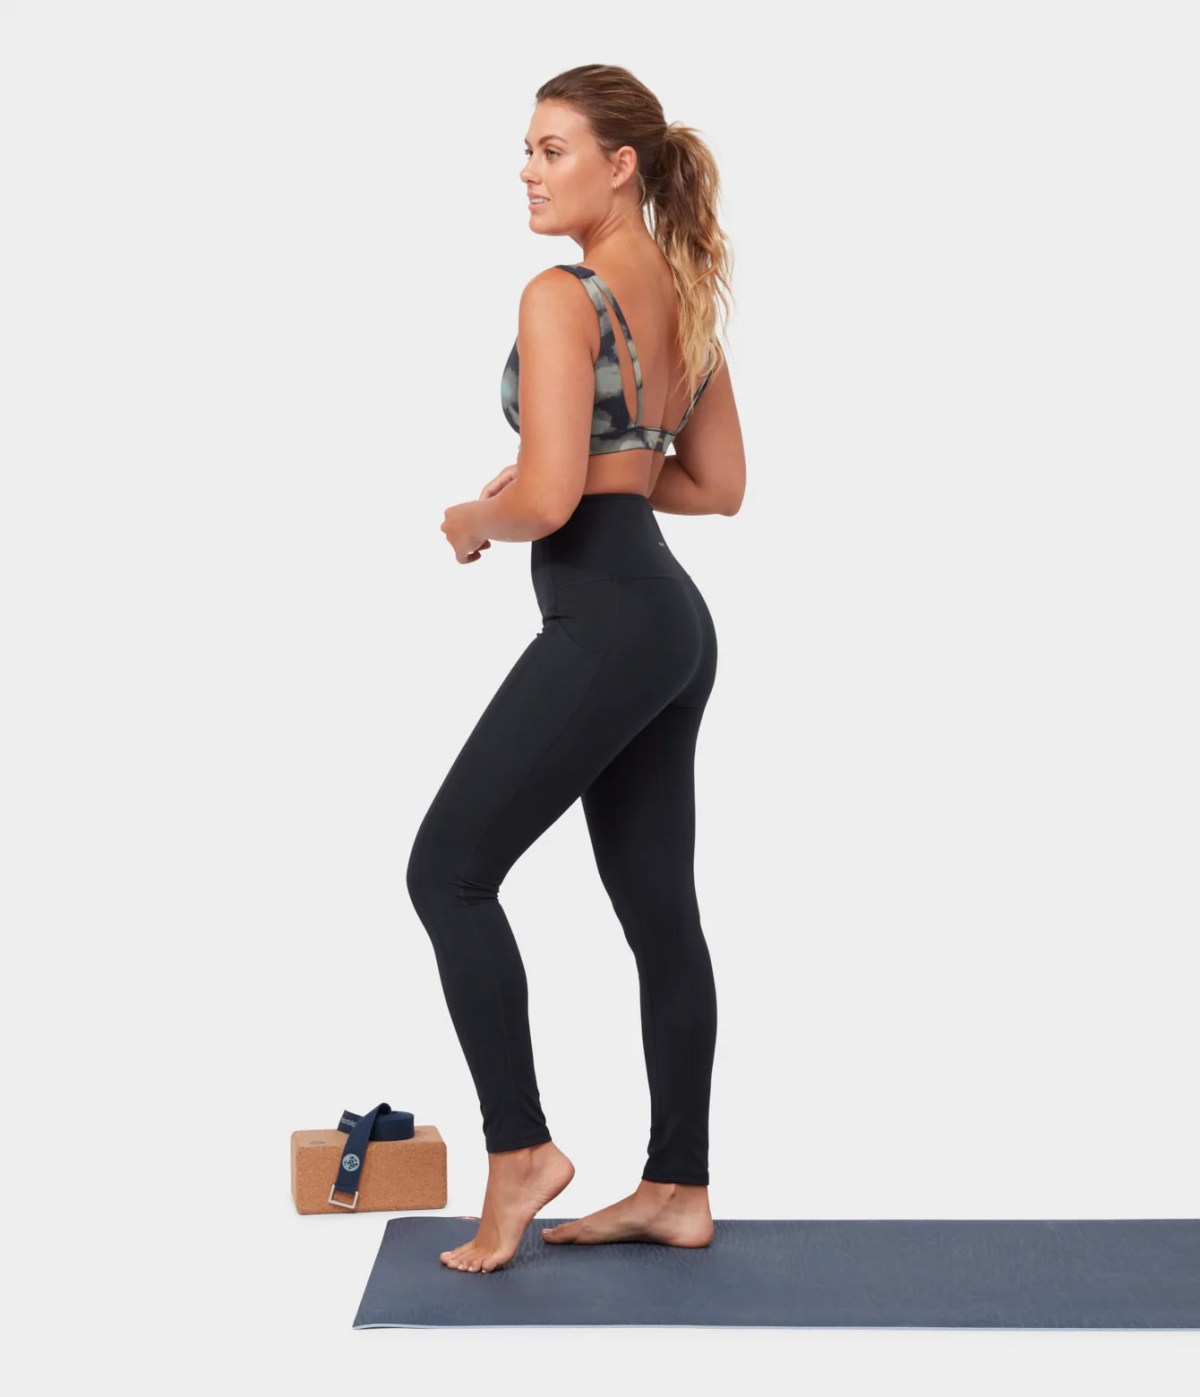 TOP 9 WOMEN'S YOGA LEGGINGS & BOTTOMS TO MAKE ANY WOMAN LOOK AND FEEL INCREDIBLE